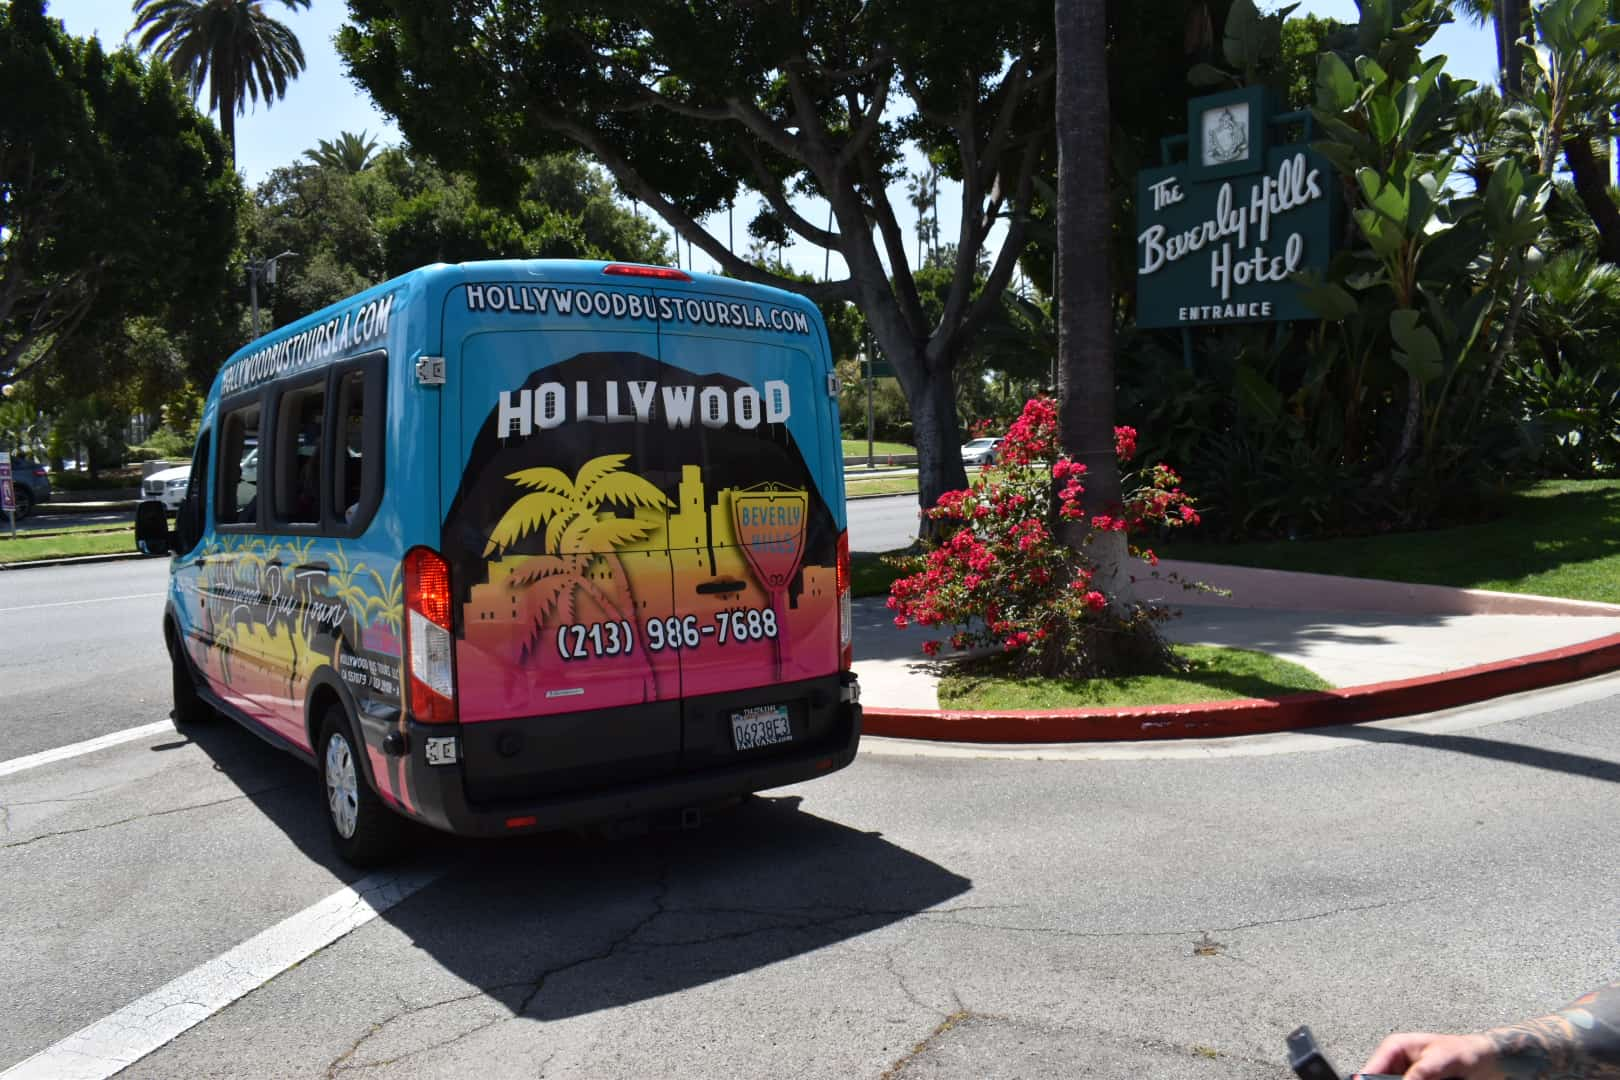 Hollywood Bus Tours - Beverly Hills Hotel